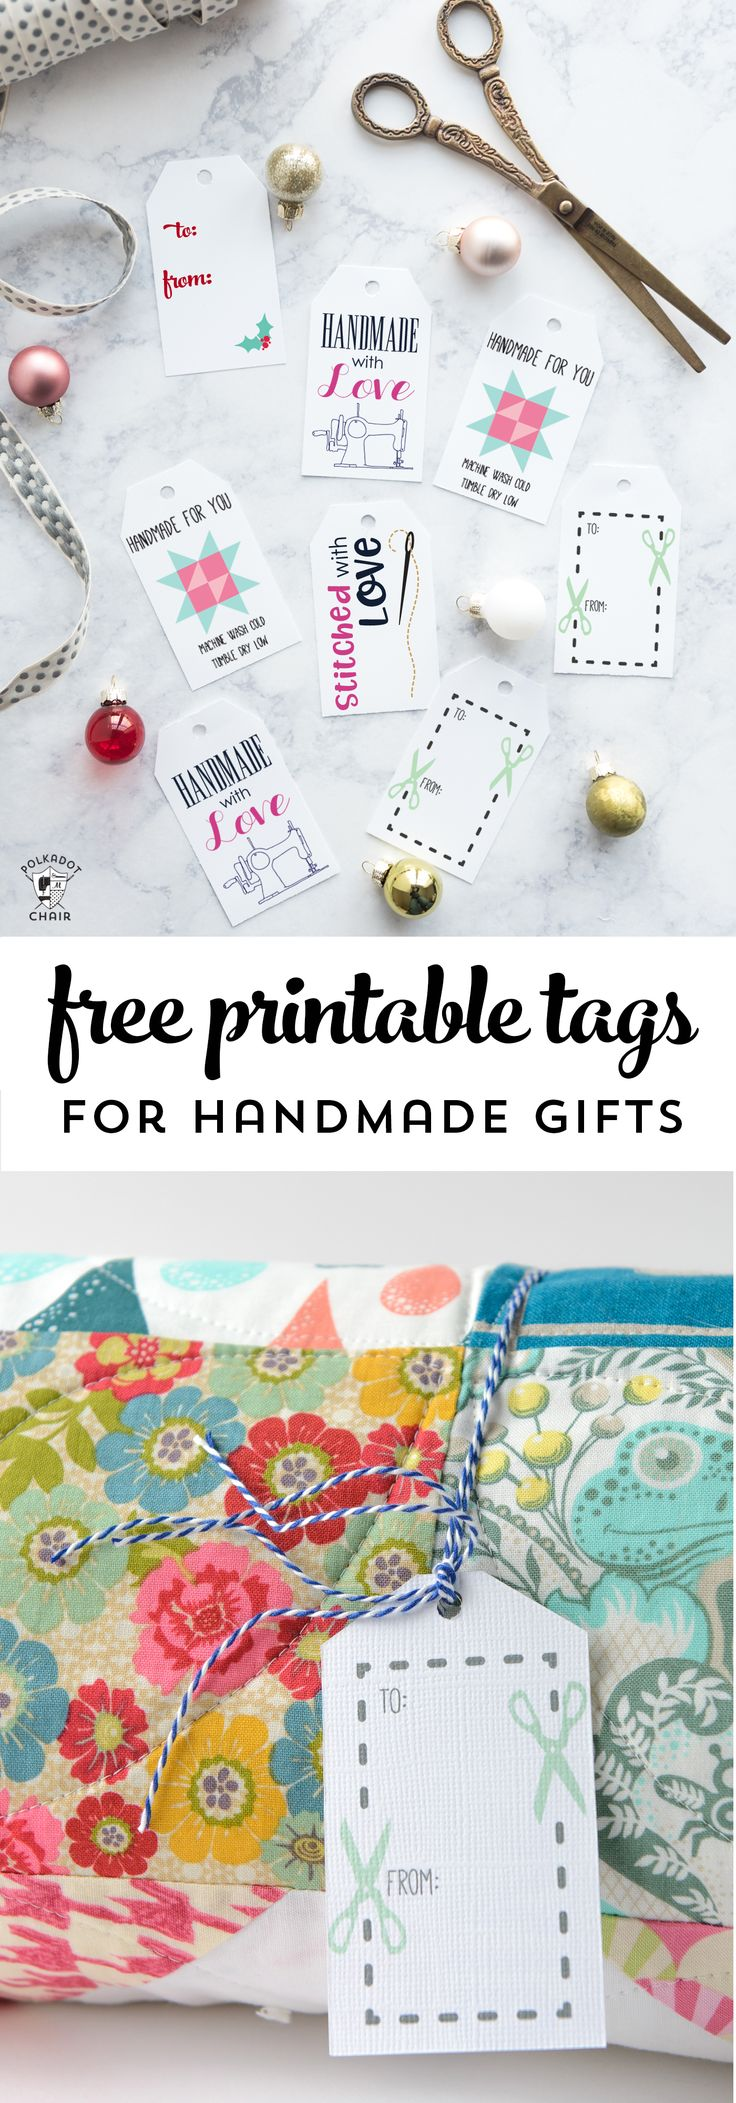 Free Printable Gift Tags for Handmade Gifts - gift tags for sewing gifts or knit...